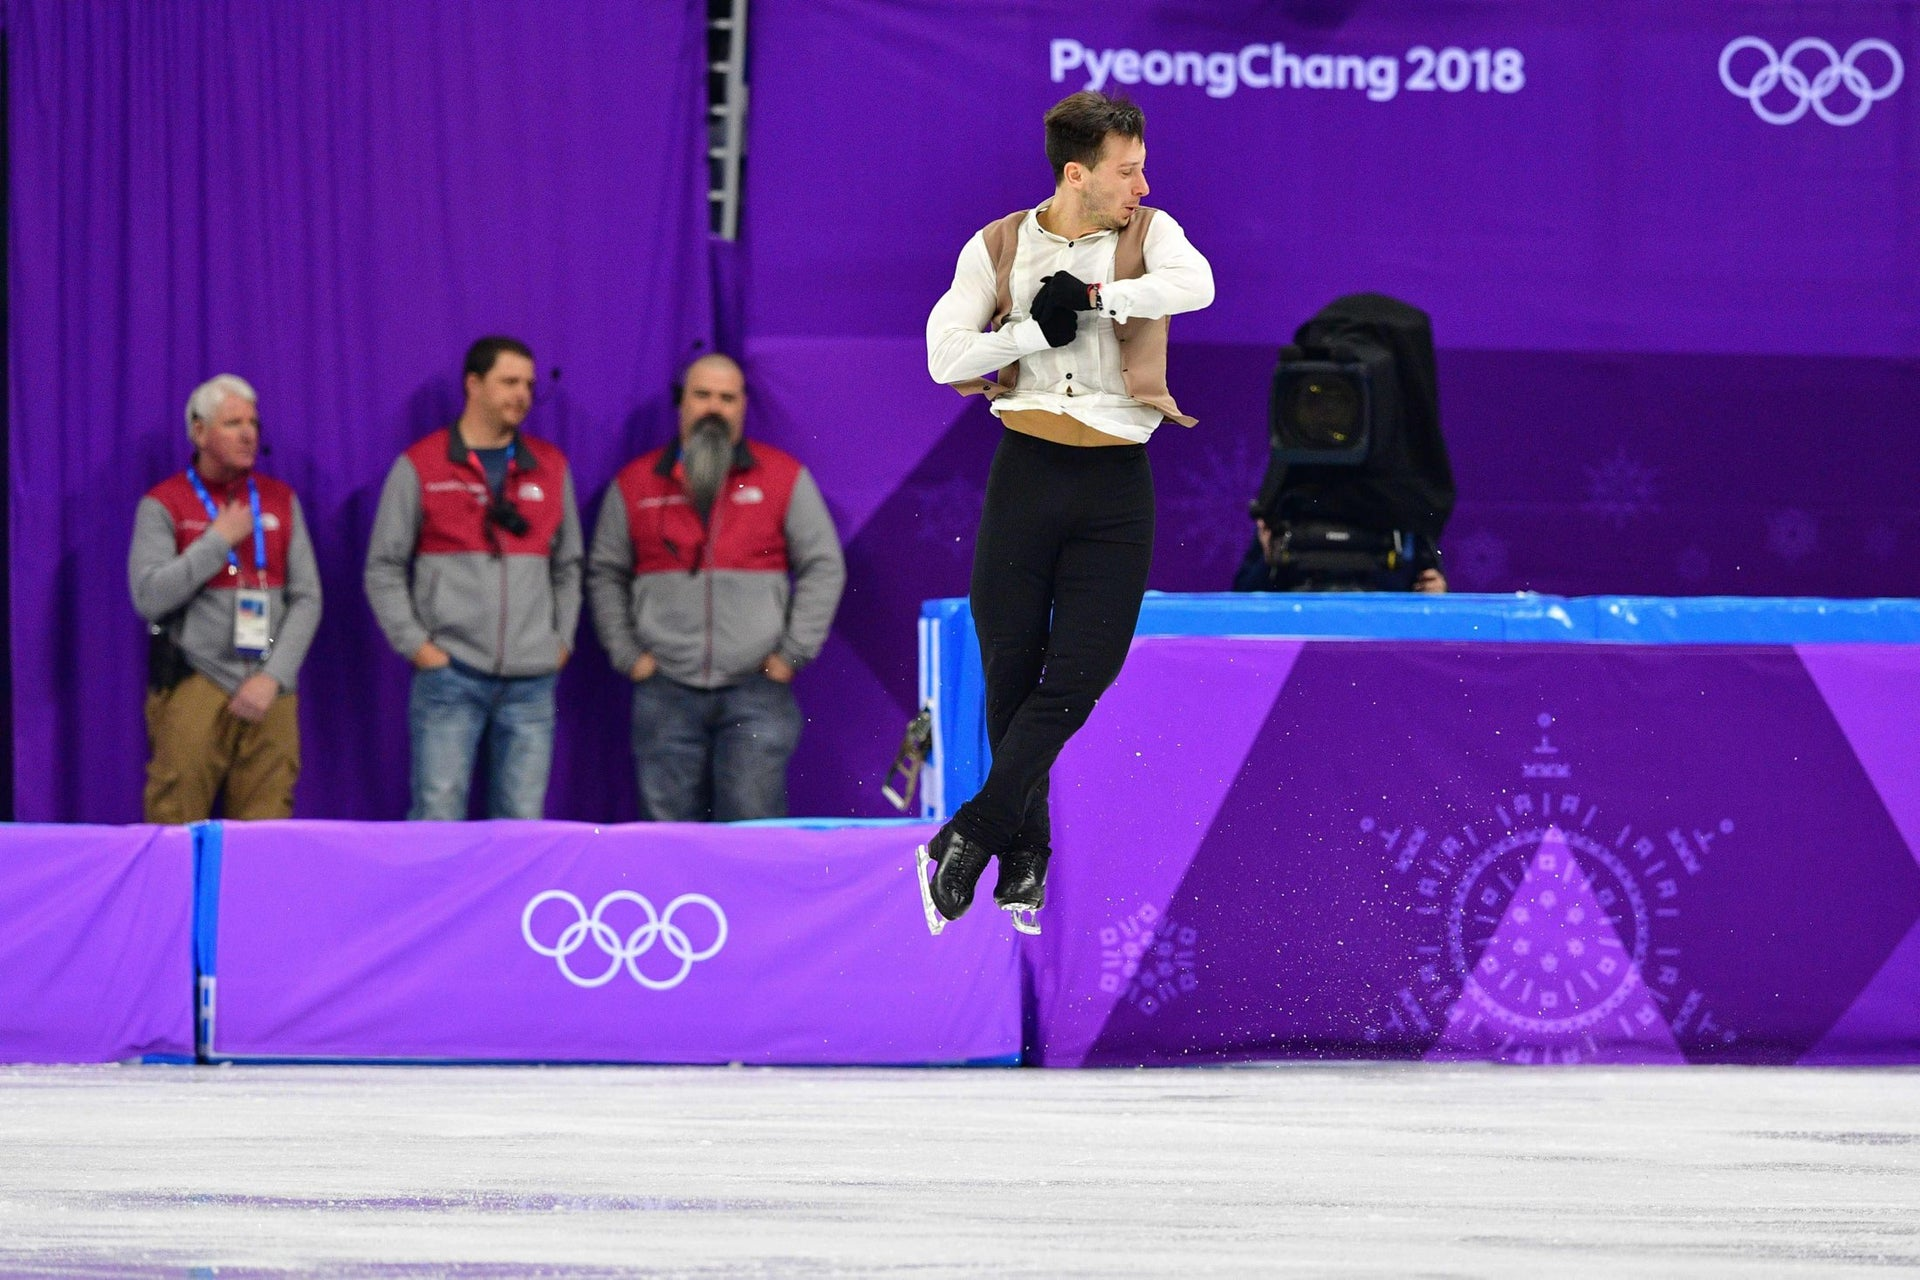 Israel's Alexei Bychenko competes in the figure skating team event men's single skating short program during the Pyeongchang 2018 Winter Olympic Games at the Gangneung Ice Arena in Gangneung on February 9, 2018.